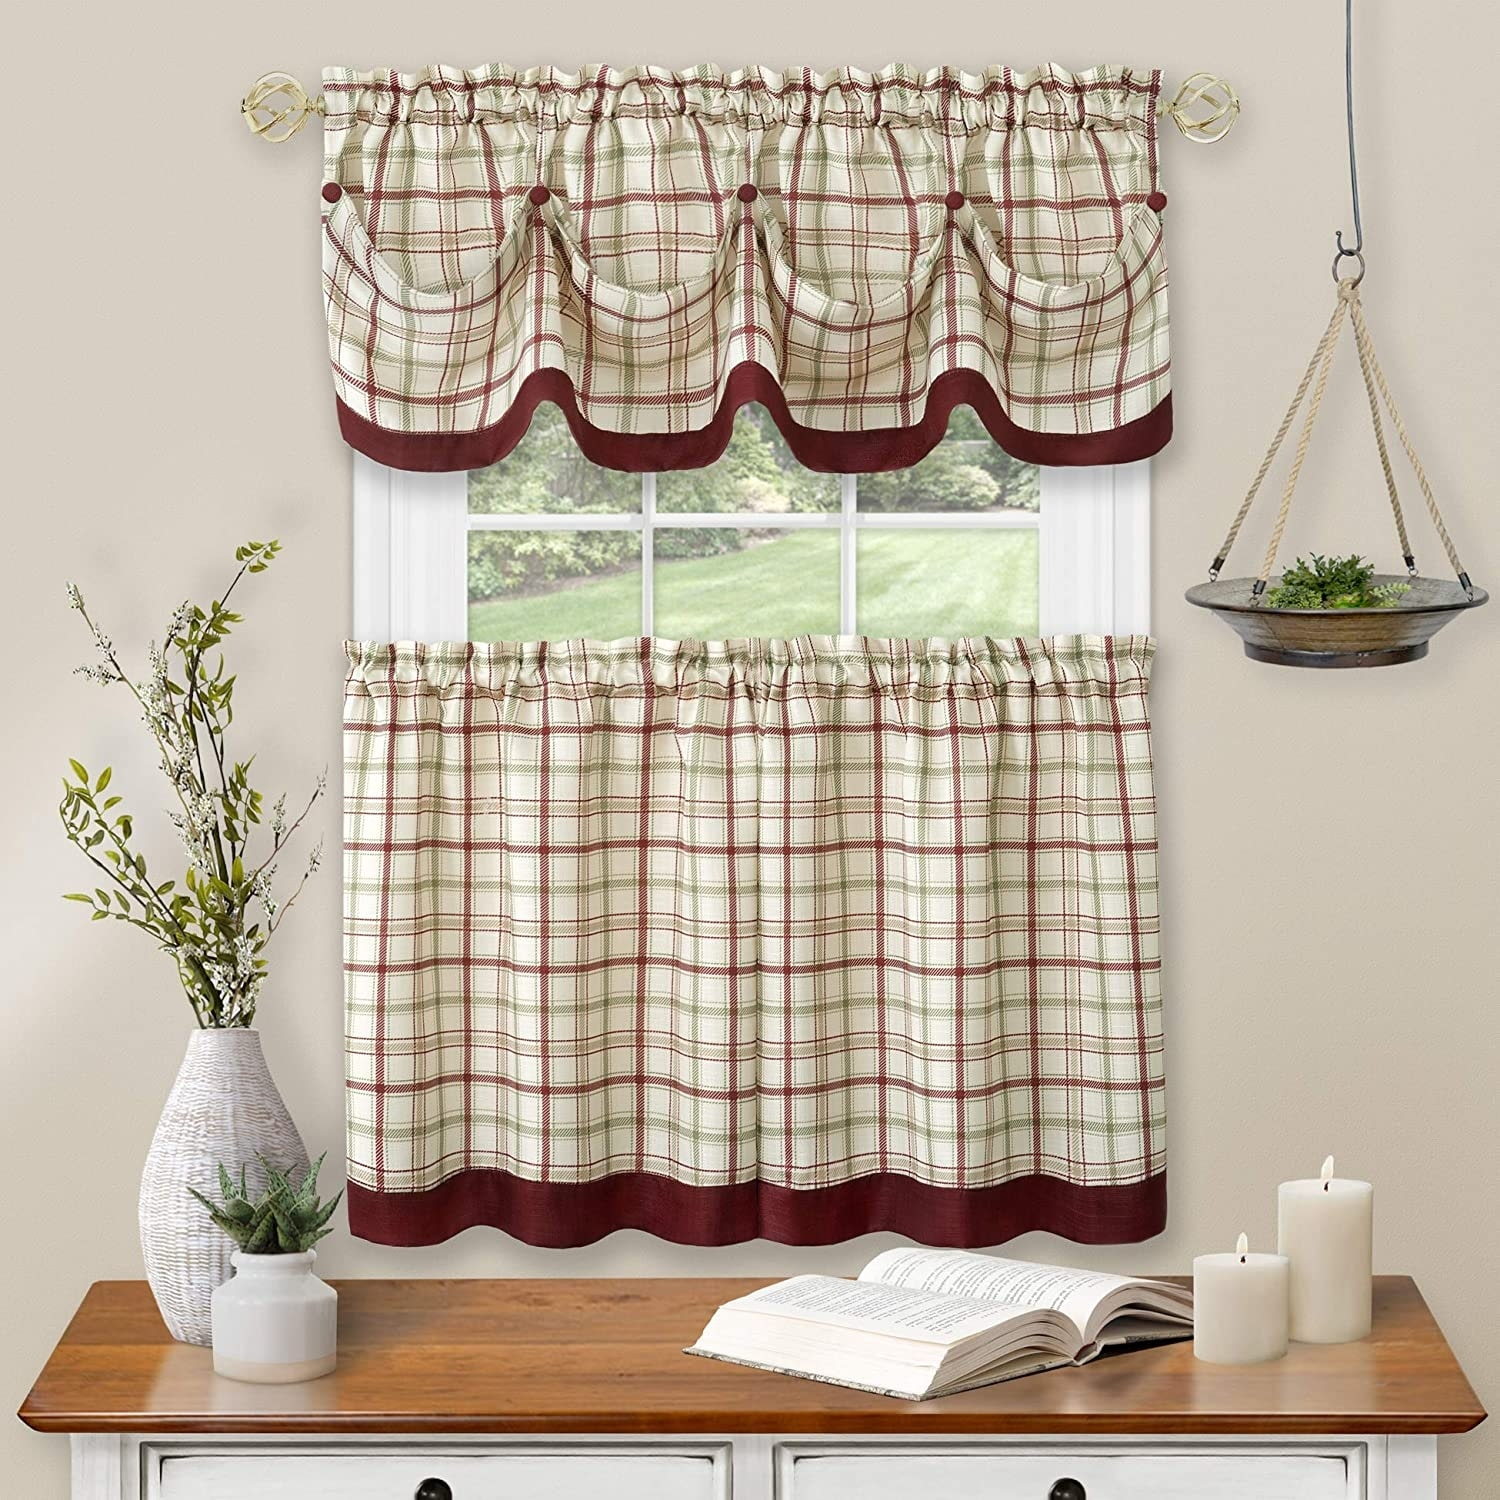 Tattersall Window Kitchen Curtain Tier And Valance Set Tier 58x36 Inches Valance 58x14 Inches Overstock 31493296